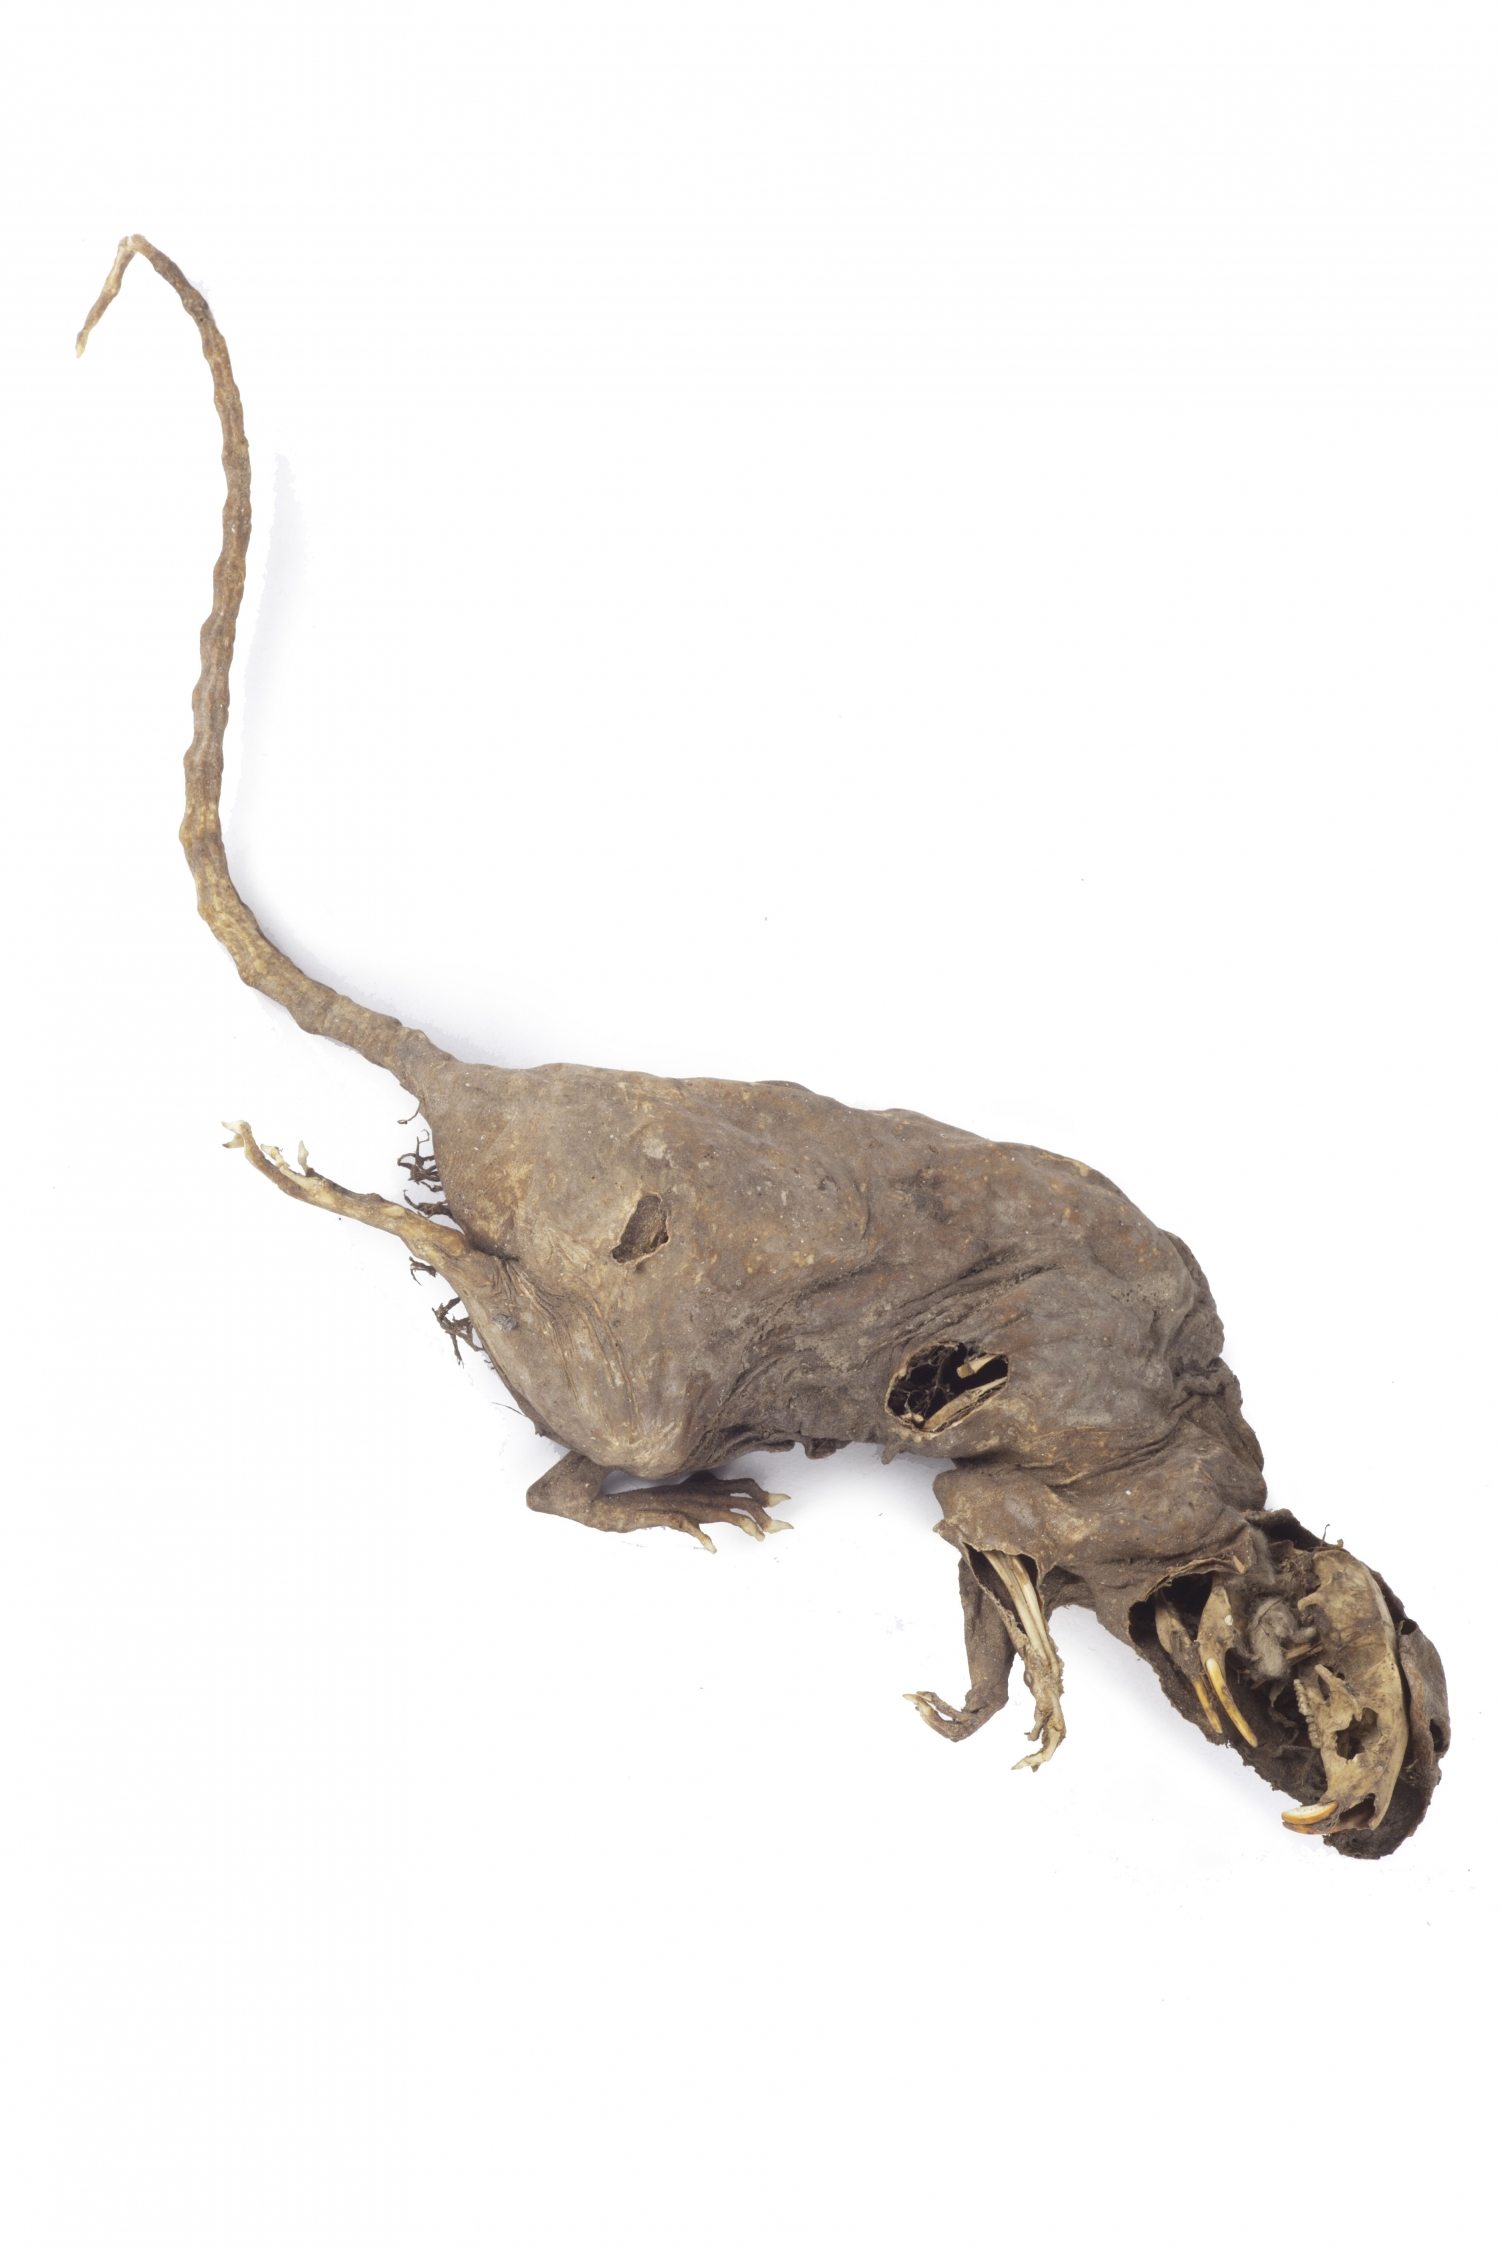 Dried up body of rat